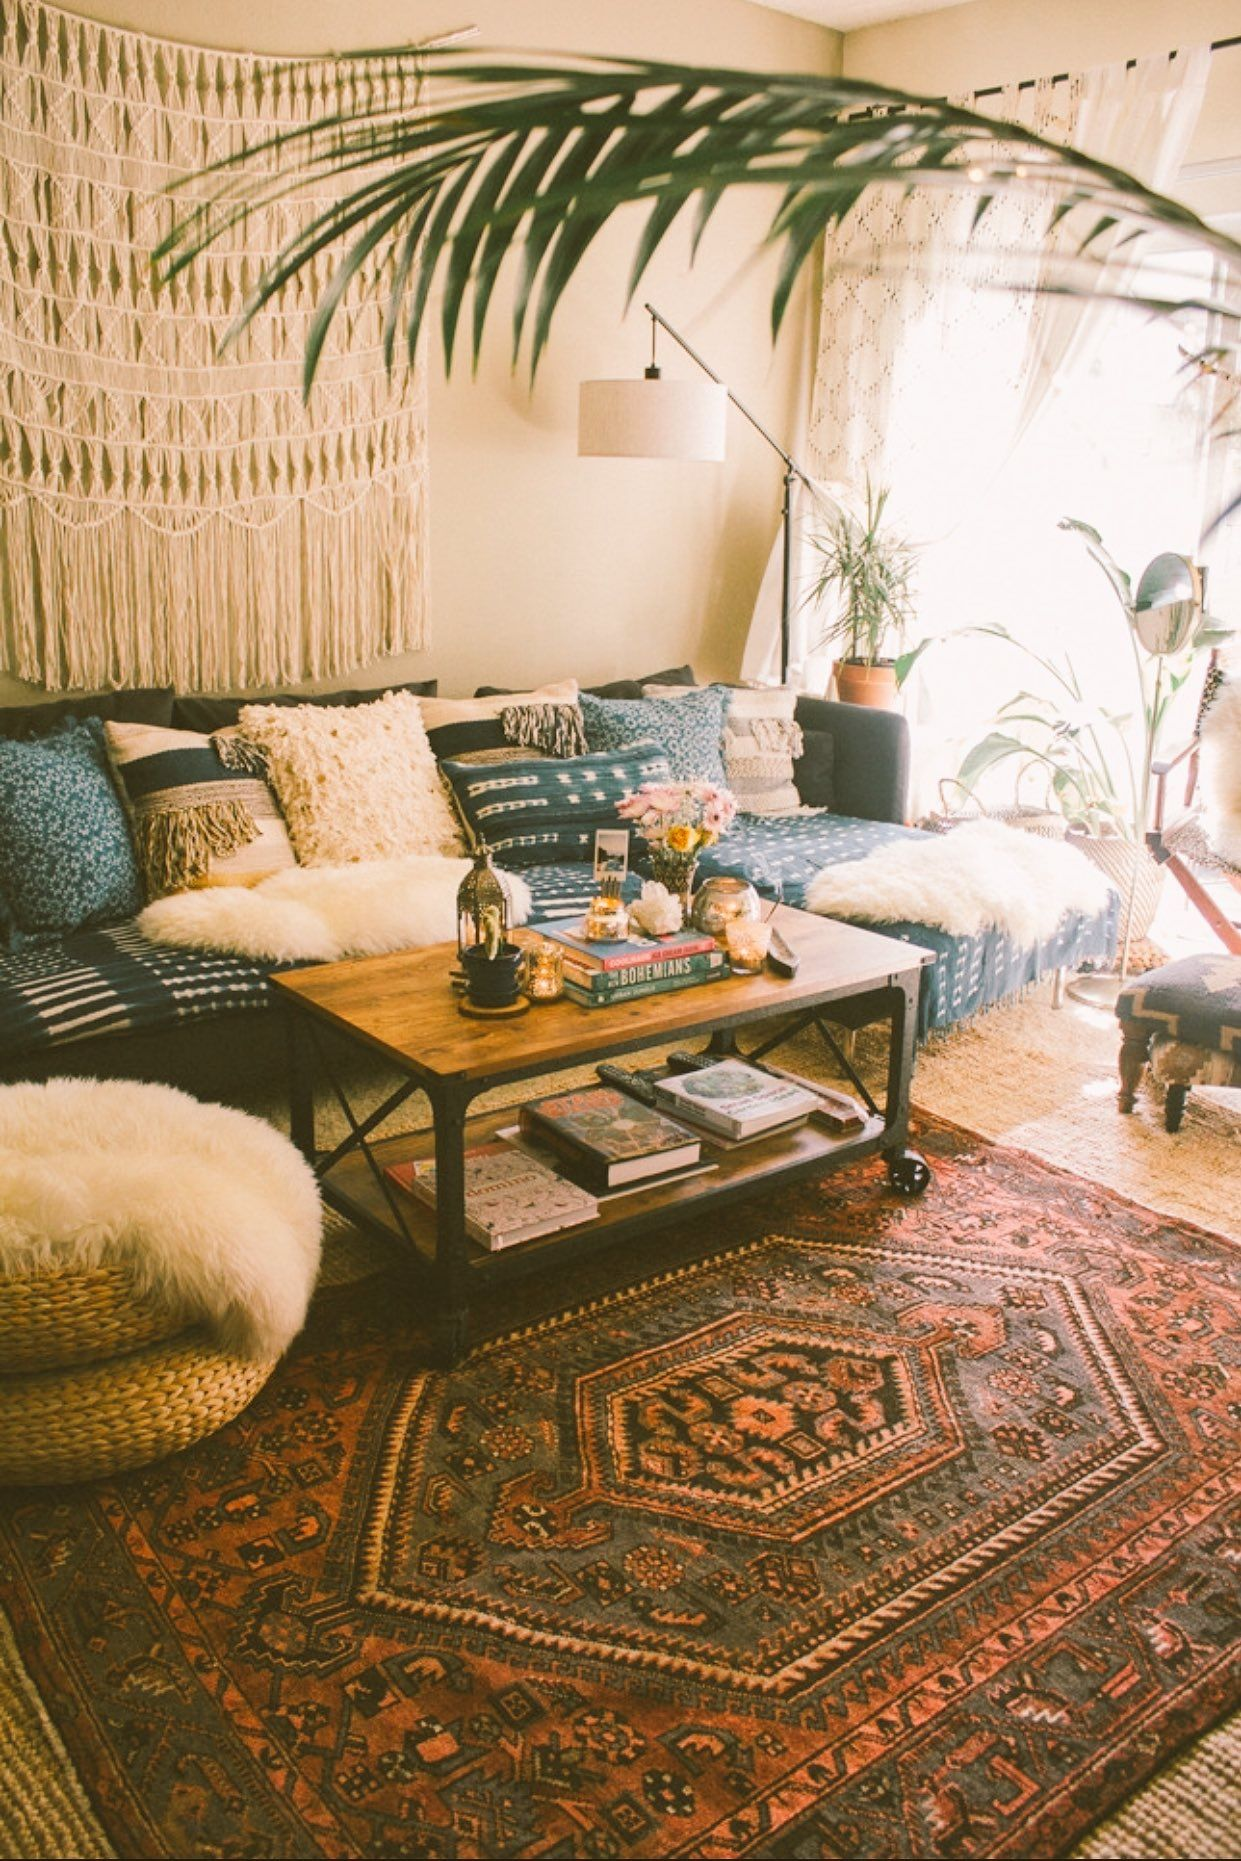 pin by ghena on decoration bohemian living room decor modern bohemian living room decor on boho chic decor living room bohemian kitchen id=33377